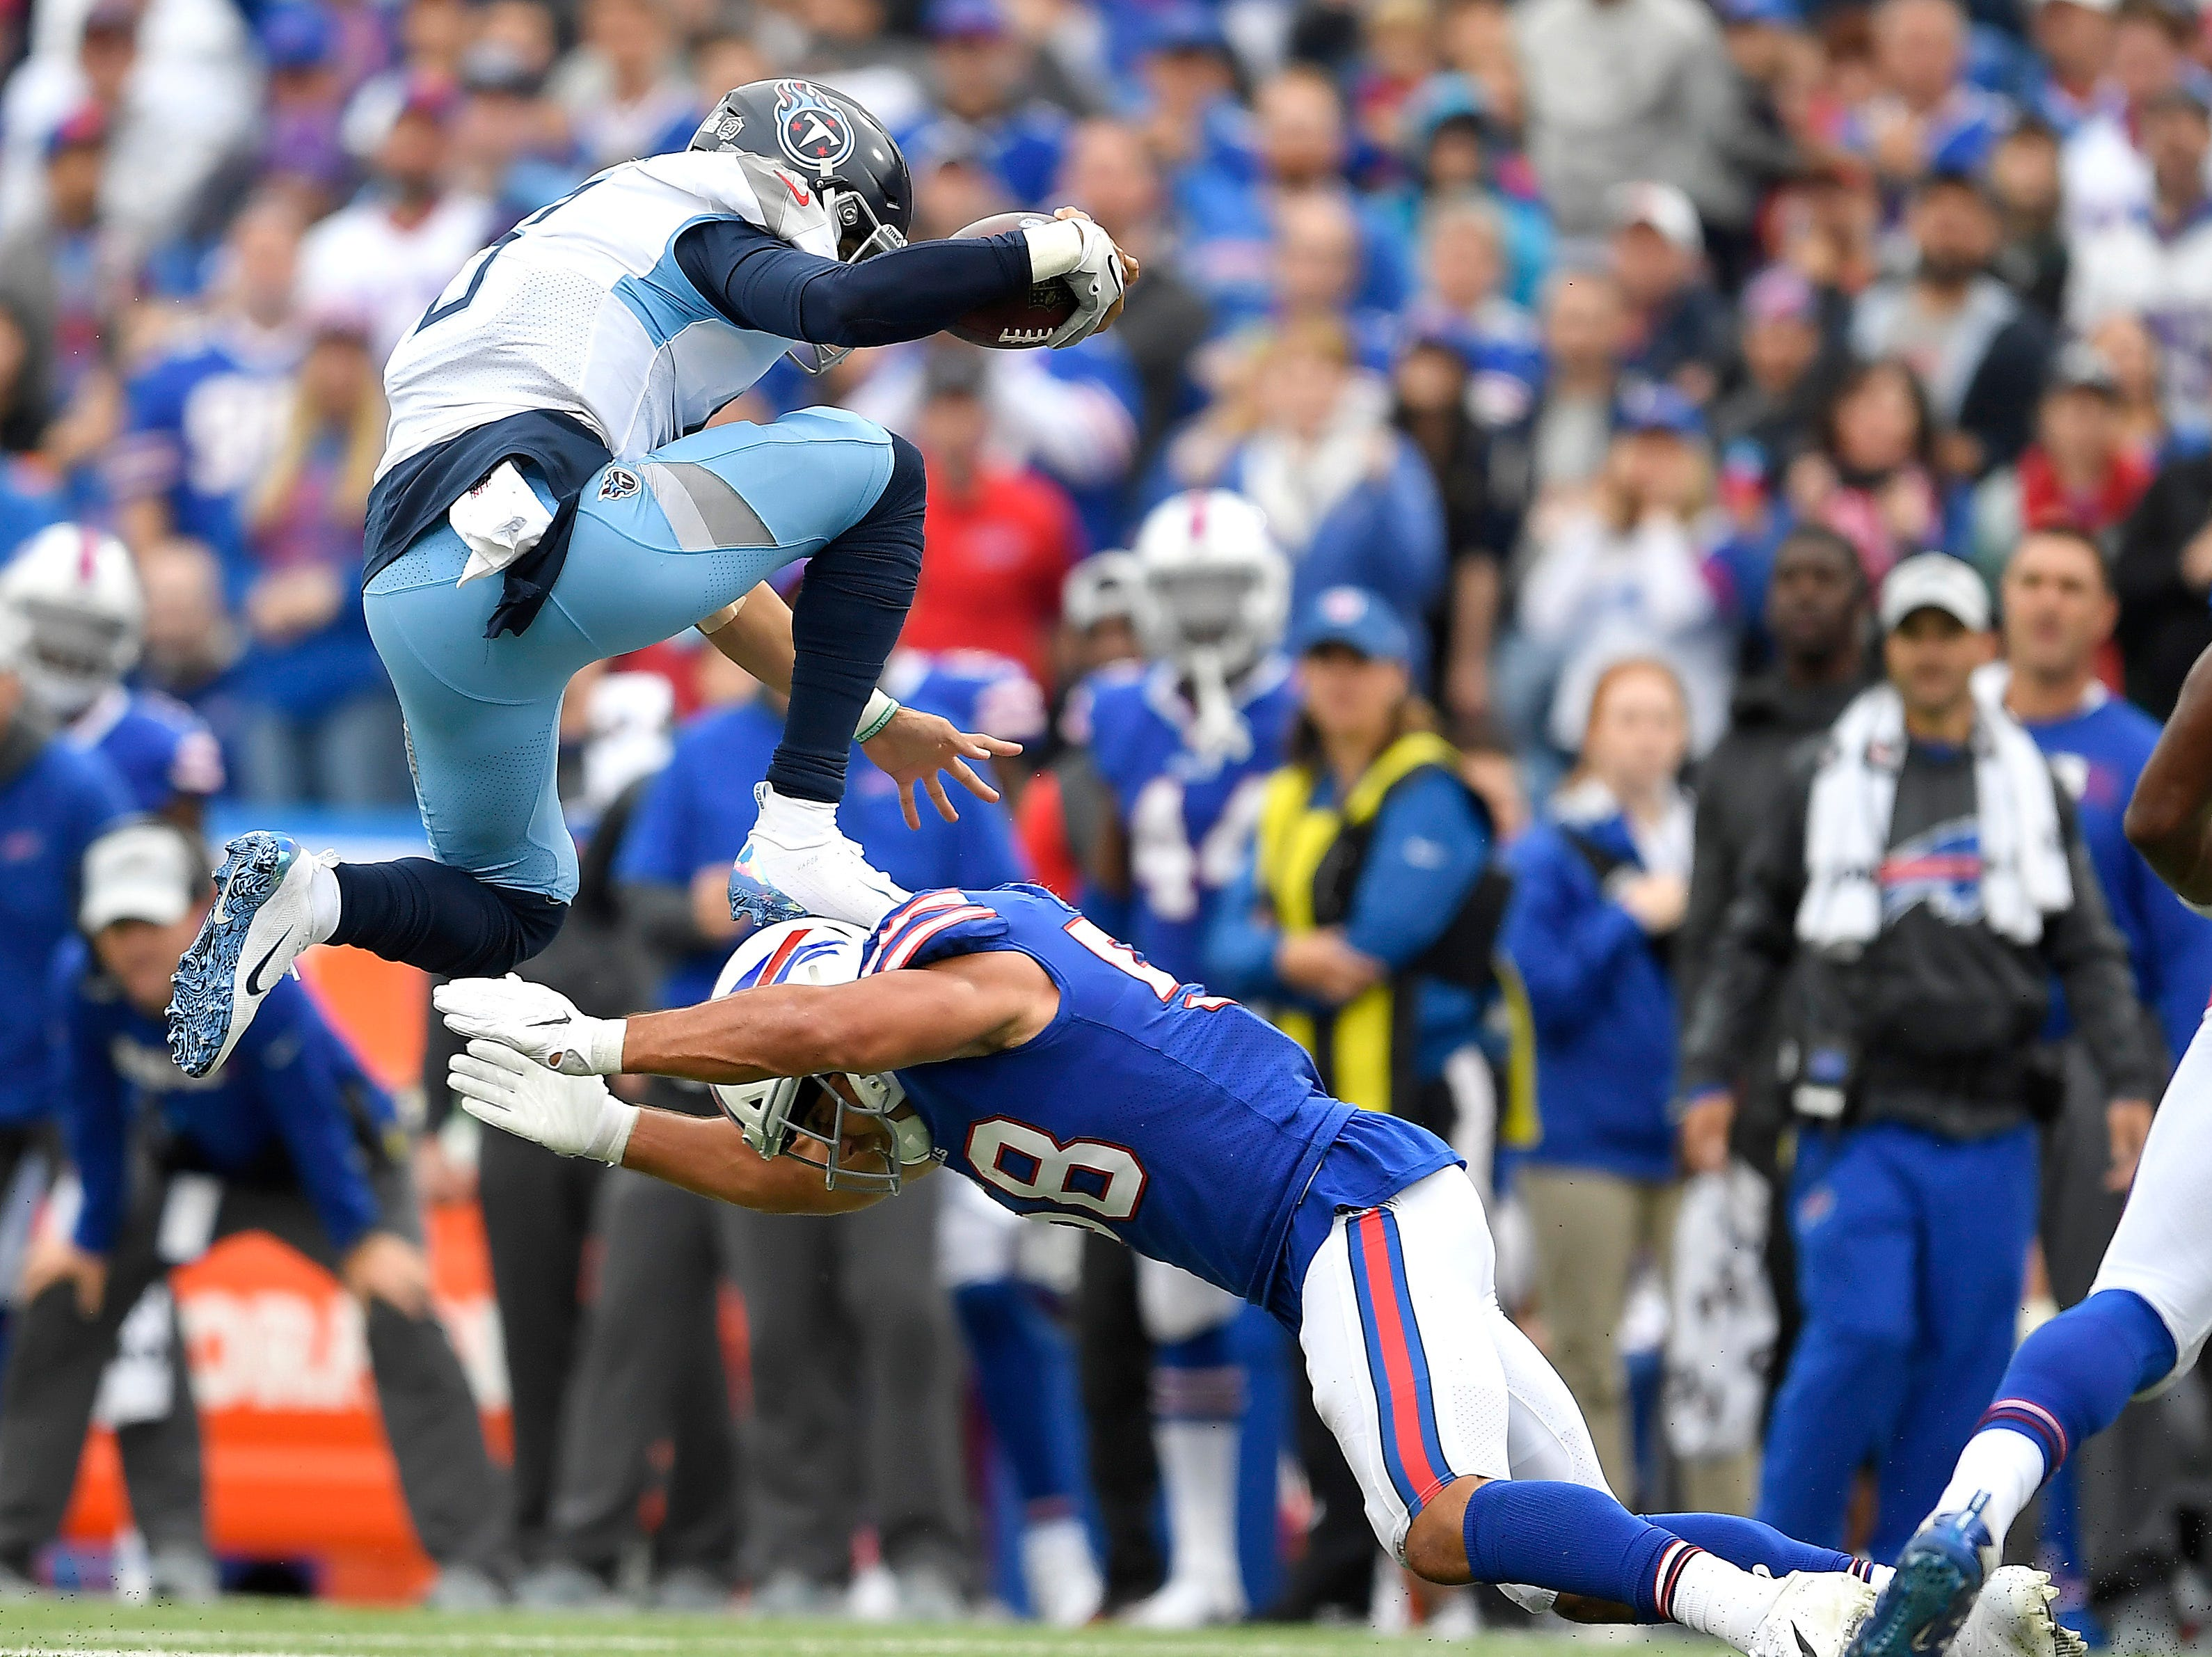 Tennessee Titans quarterback Marcus Mariota, top, leaps over Buffalo Bills linebacker Matt Milano during the second half of an NFL football game, Sunday, Oct. 7, 2018, in Orchard Park, N.Y. (AP Photo/Adrian Kraus)